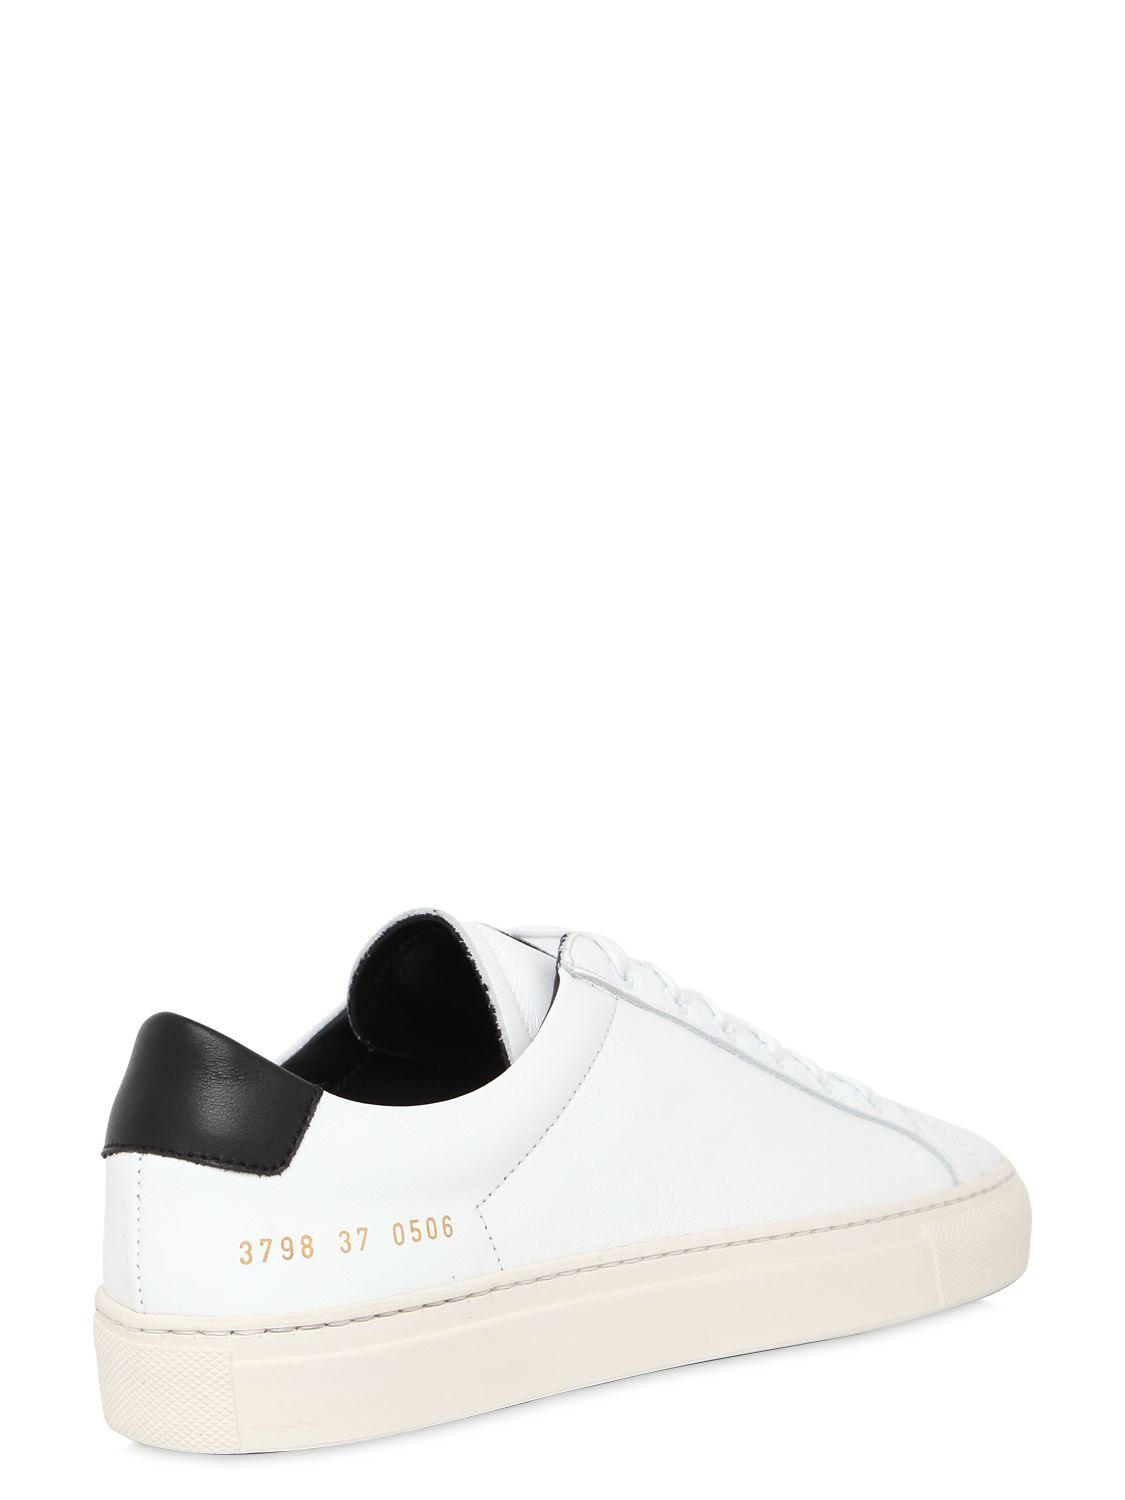 COMMON PROJECTS 30MM ACHILLES RETRO LEATHER SNEAKERS Free Shipping From China PksTf0IEk